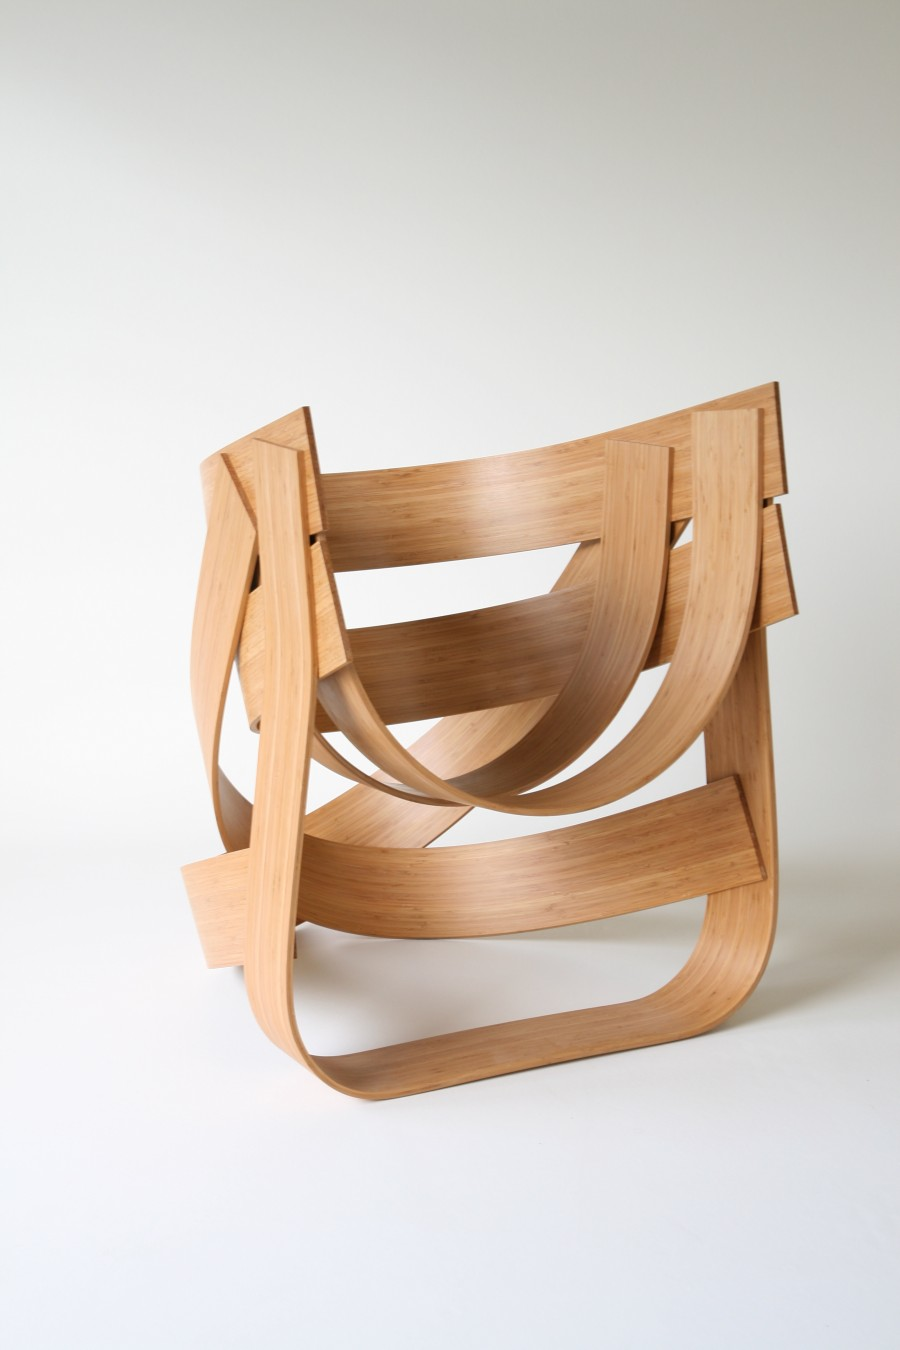 Remy & Veenhuizen, Bamboo Chair. photo credits: Thomas Fasting